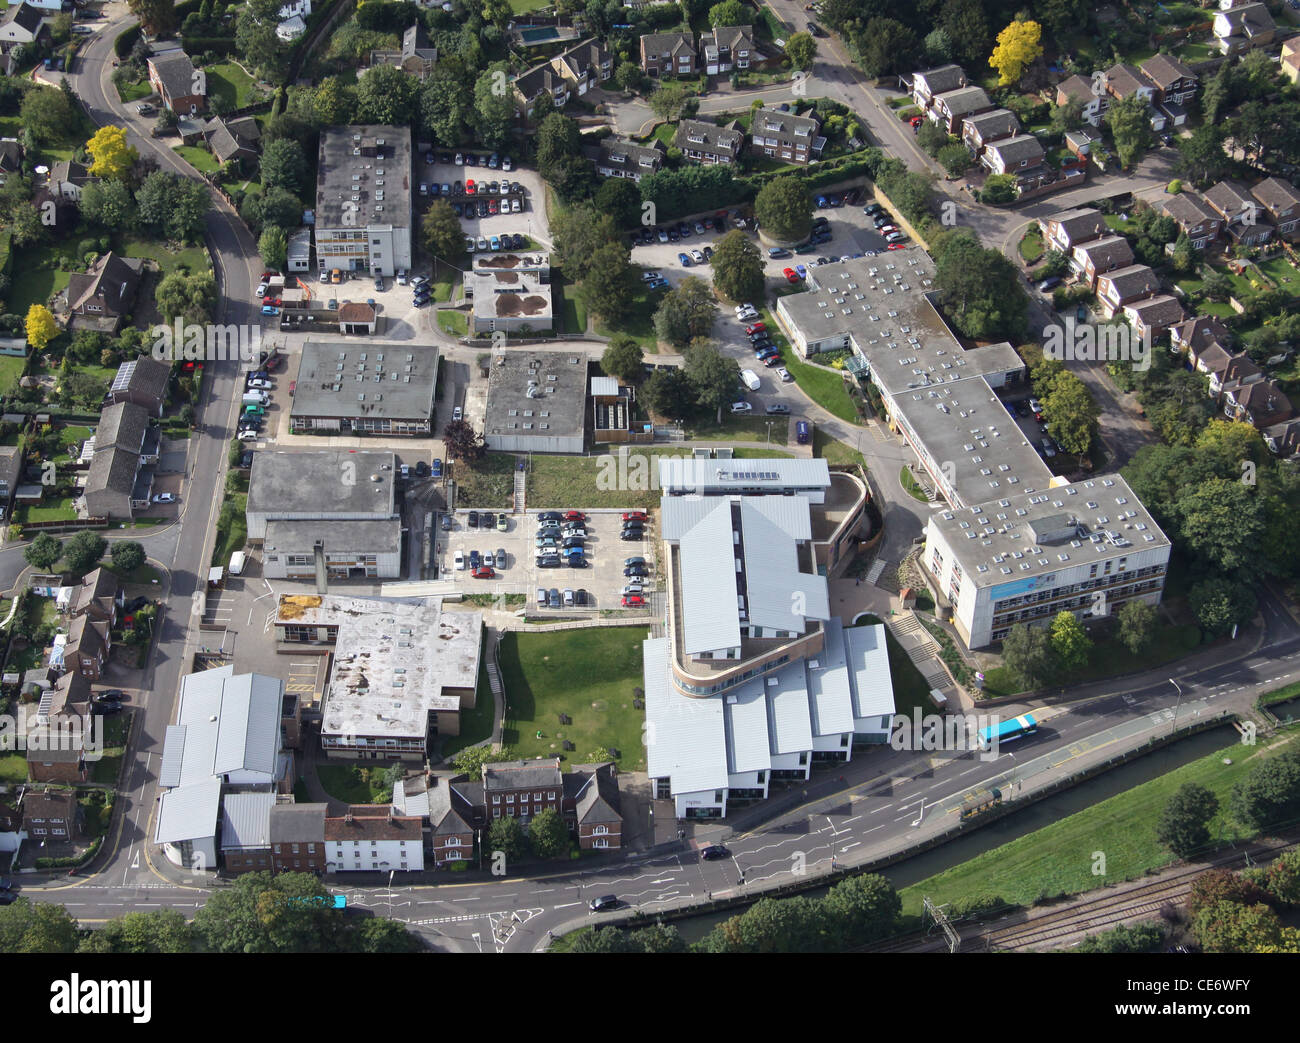 Aerial View of Hertford Regional College, Ware Campus - Stock Image